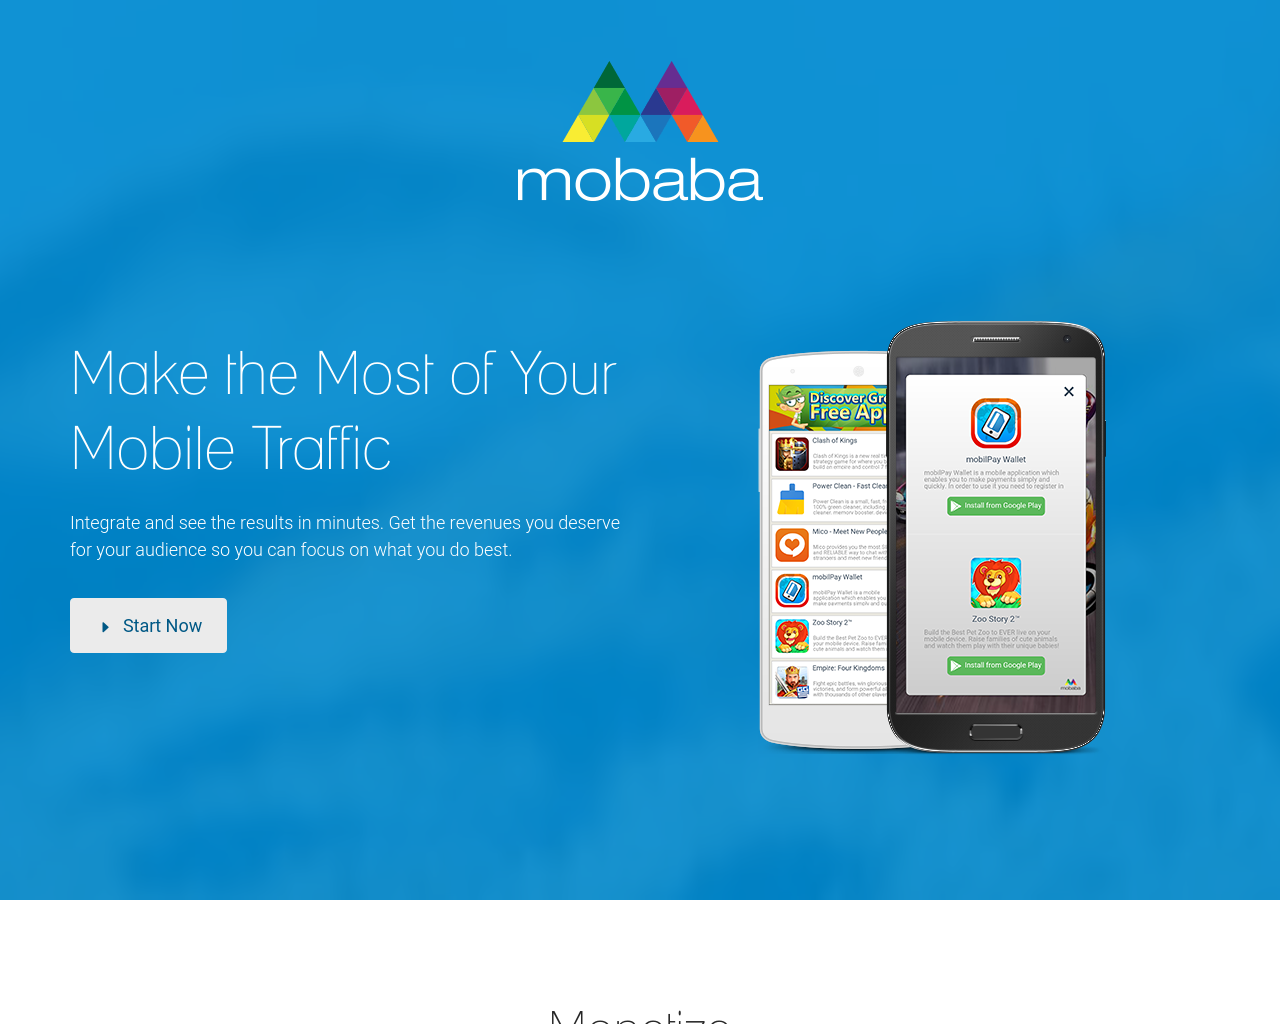 mobaba-Advertising-Reviews-Pricing